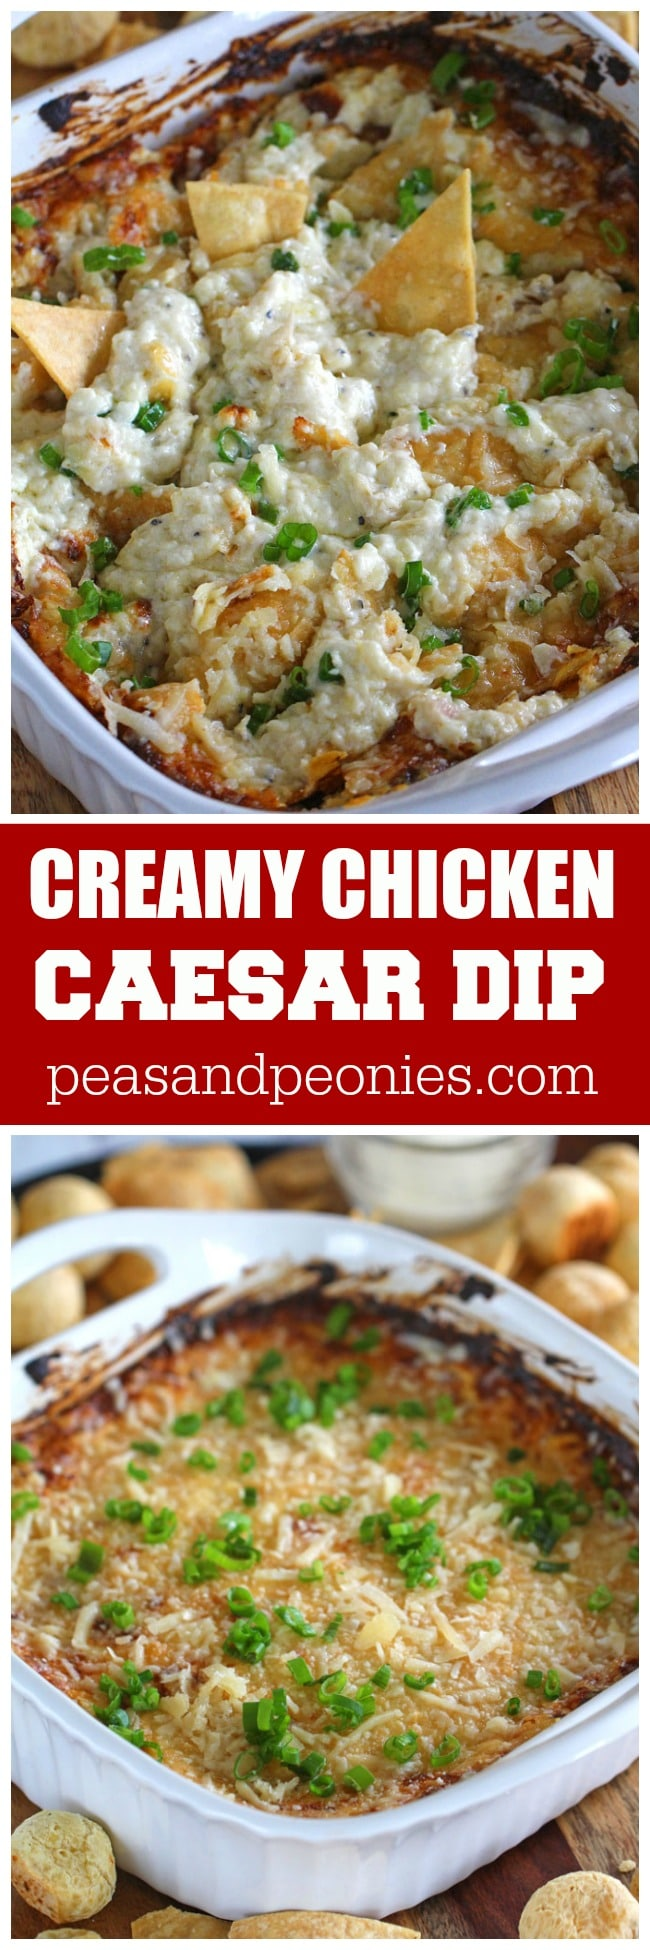 Chicken Caesar Dip is naturally gluten free and made easy with rotisserie chicken and a blend of 3 cheeses.